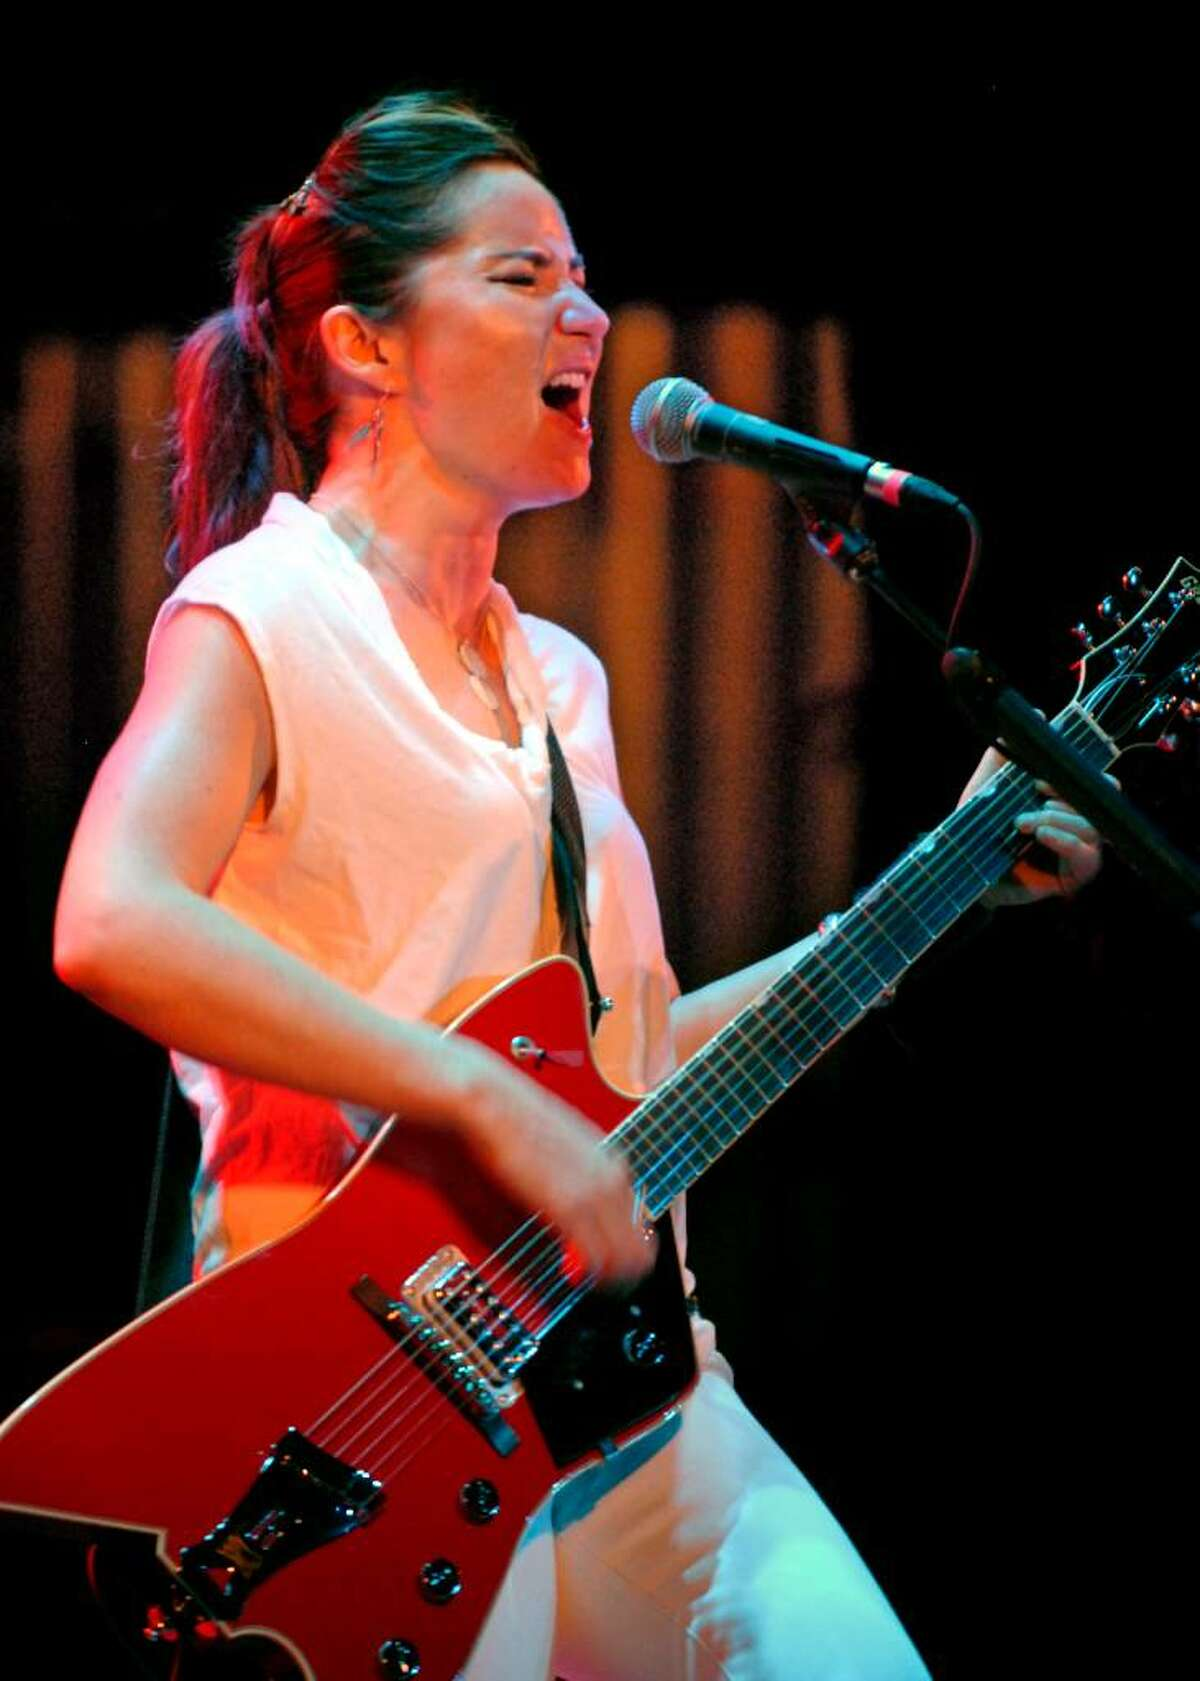 Photo by Mike Thut KT Tunstall performs at the Klein Auditorium in Bridgeport, Conn.